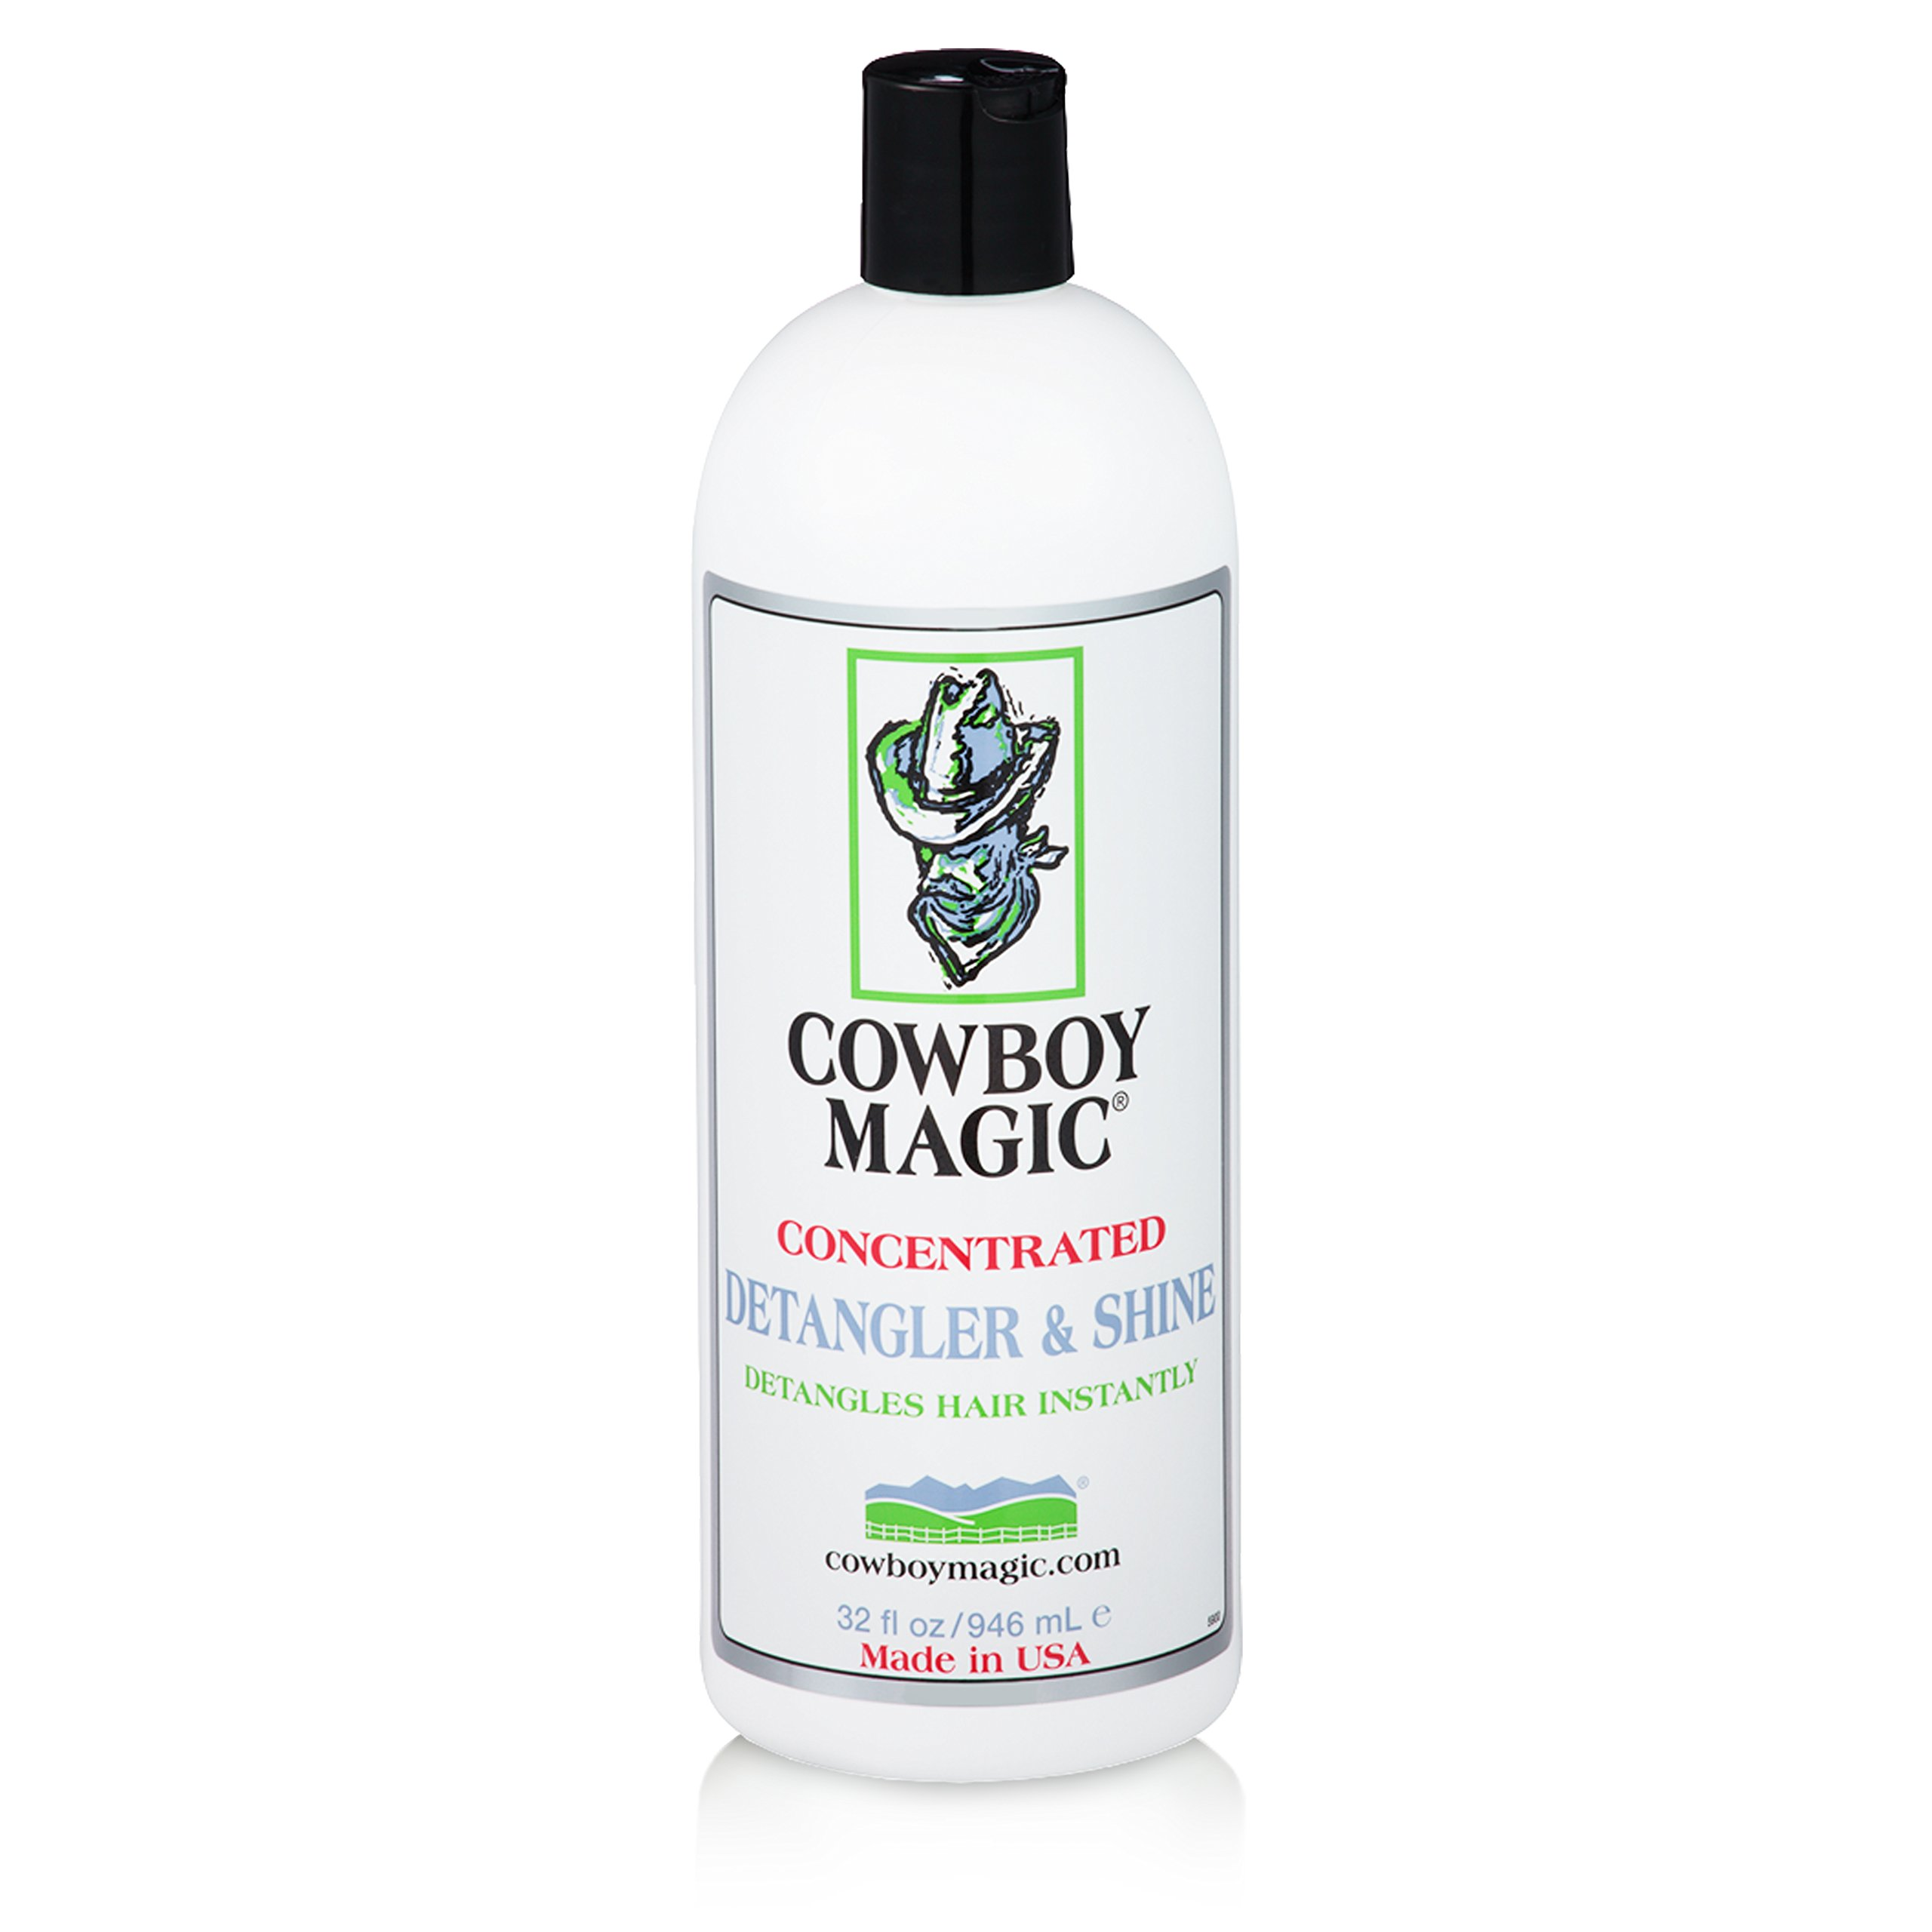 Cowboy Magic Concentrated Detangler & Shine 32 Ounce by Cowboy Magic